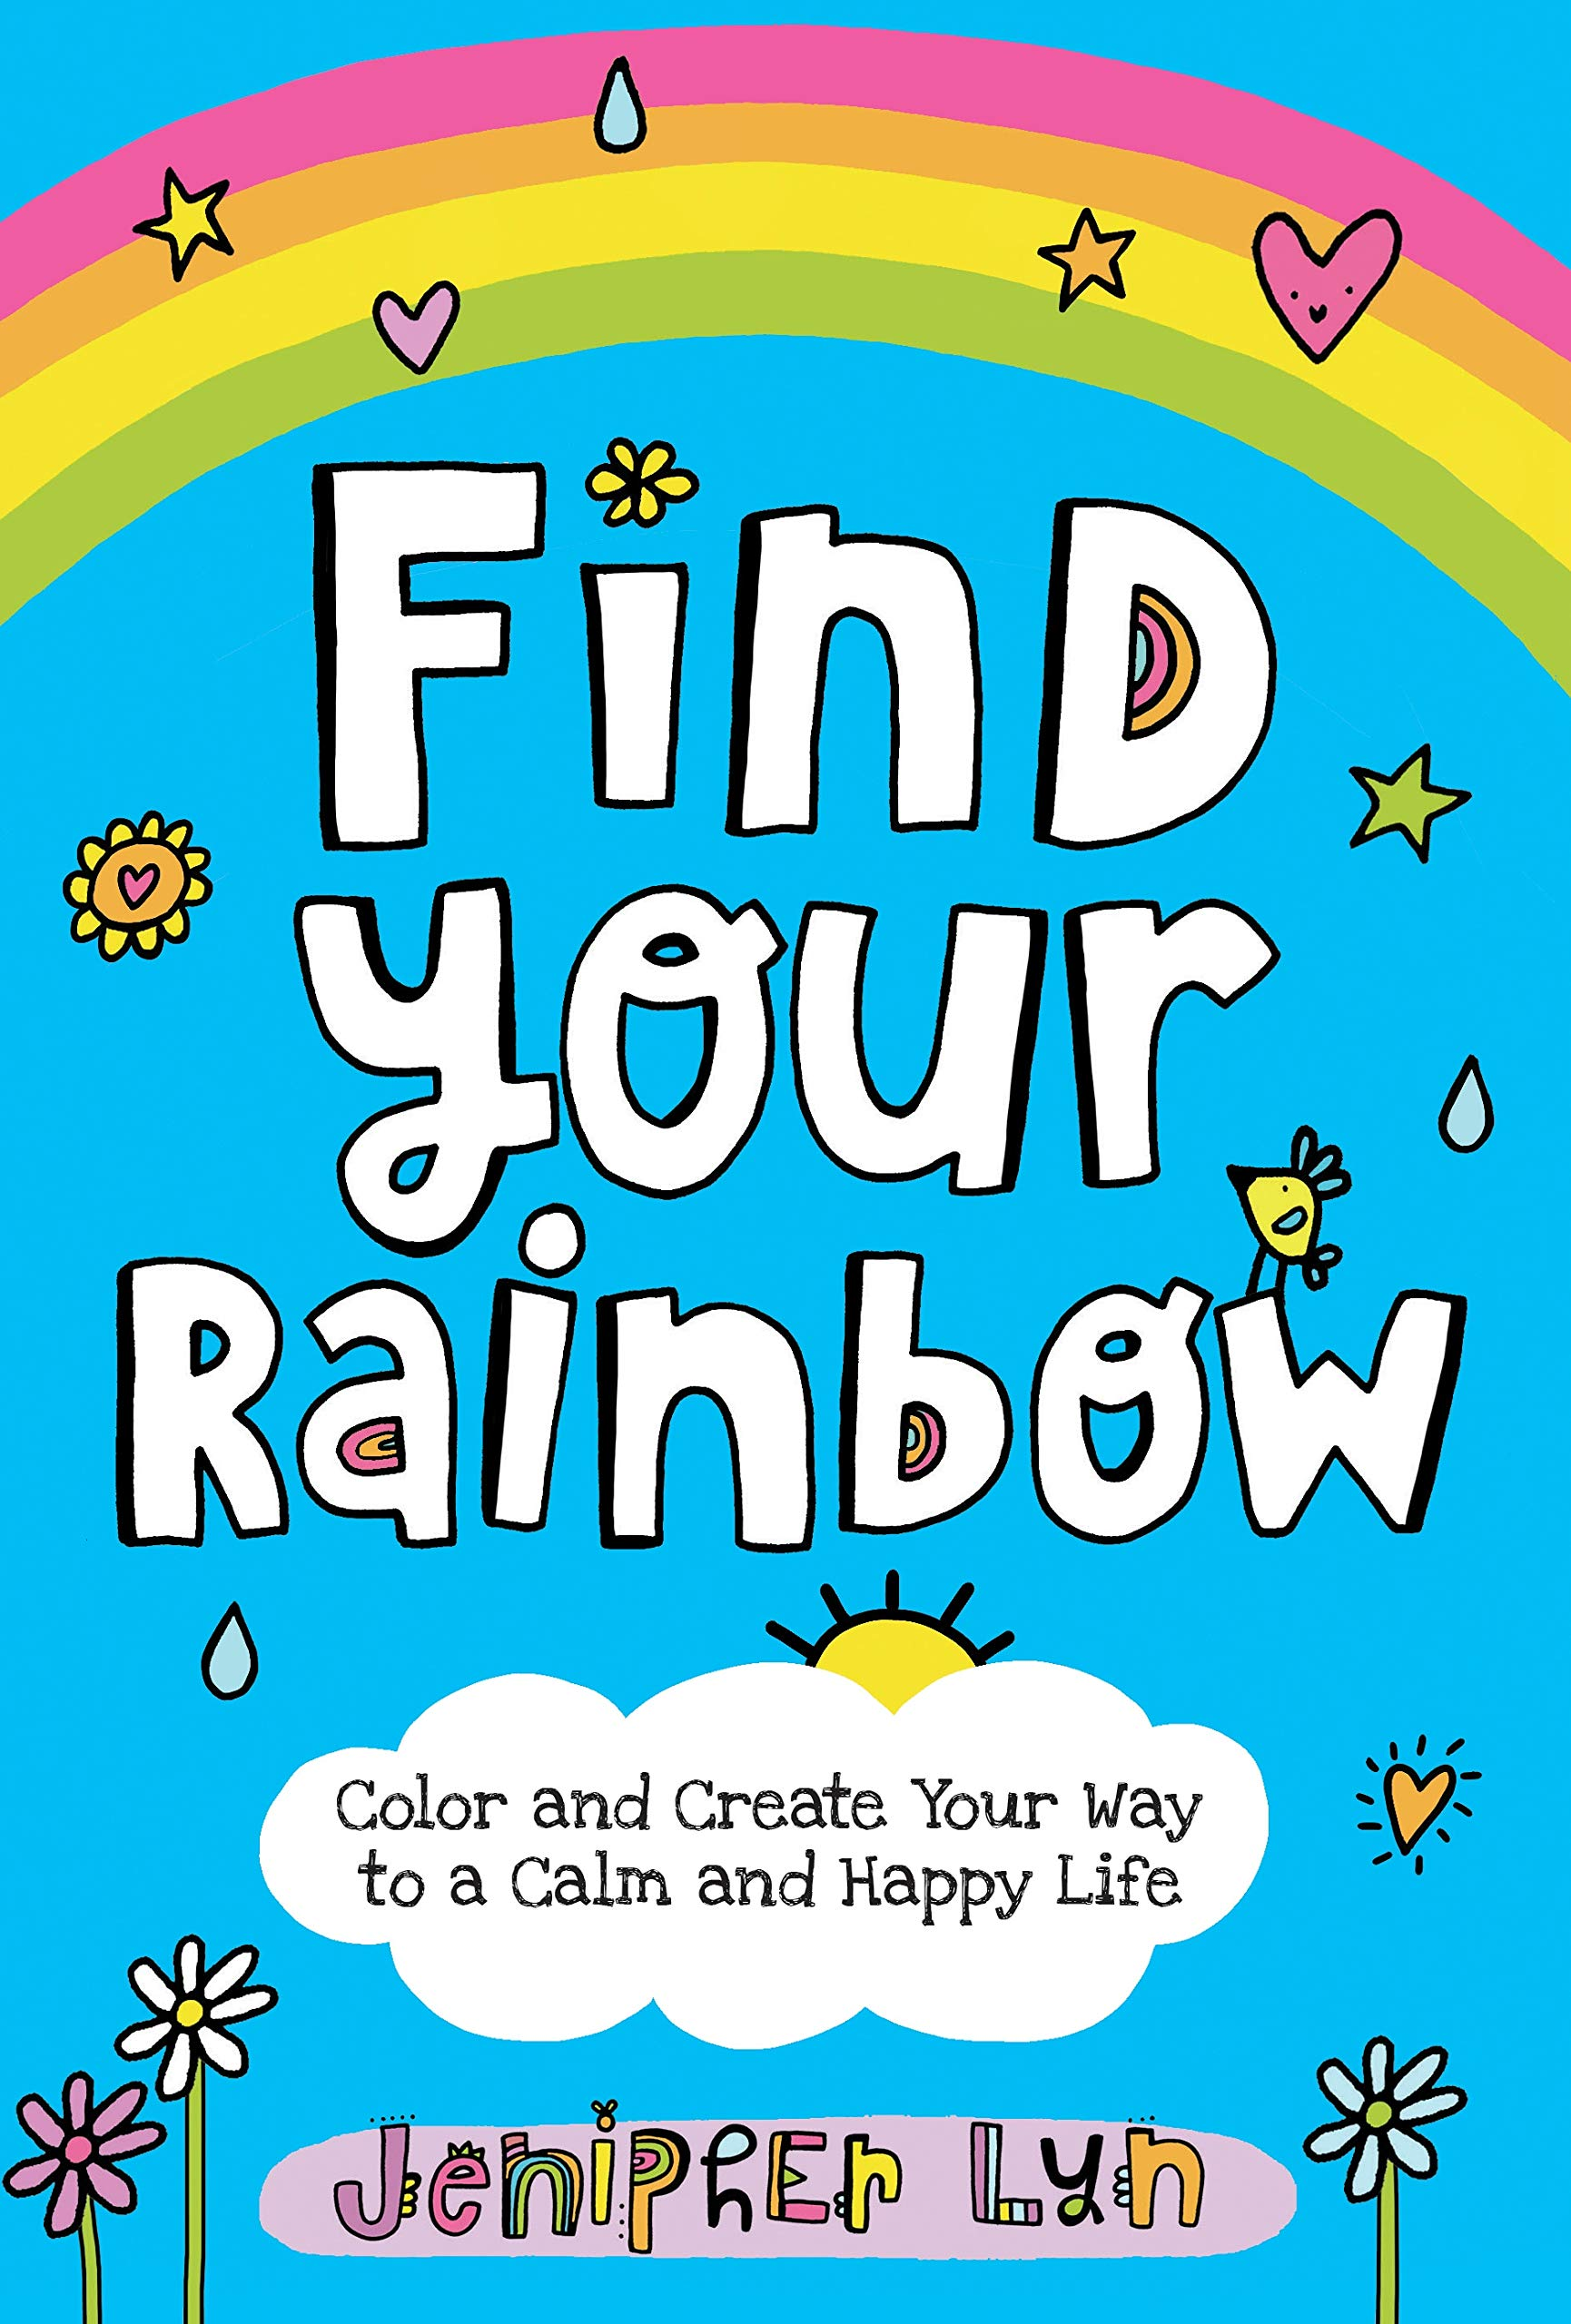 Find Your Rainbow: Color and Create Your Way to a Calm and Happy Life